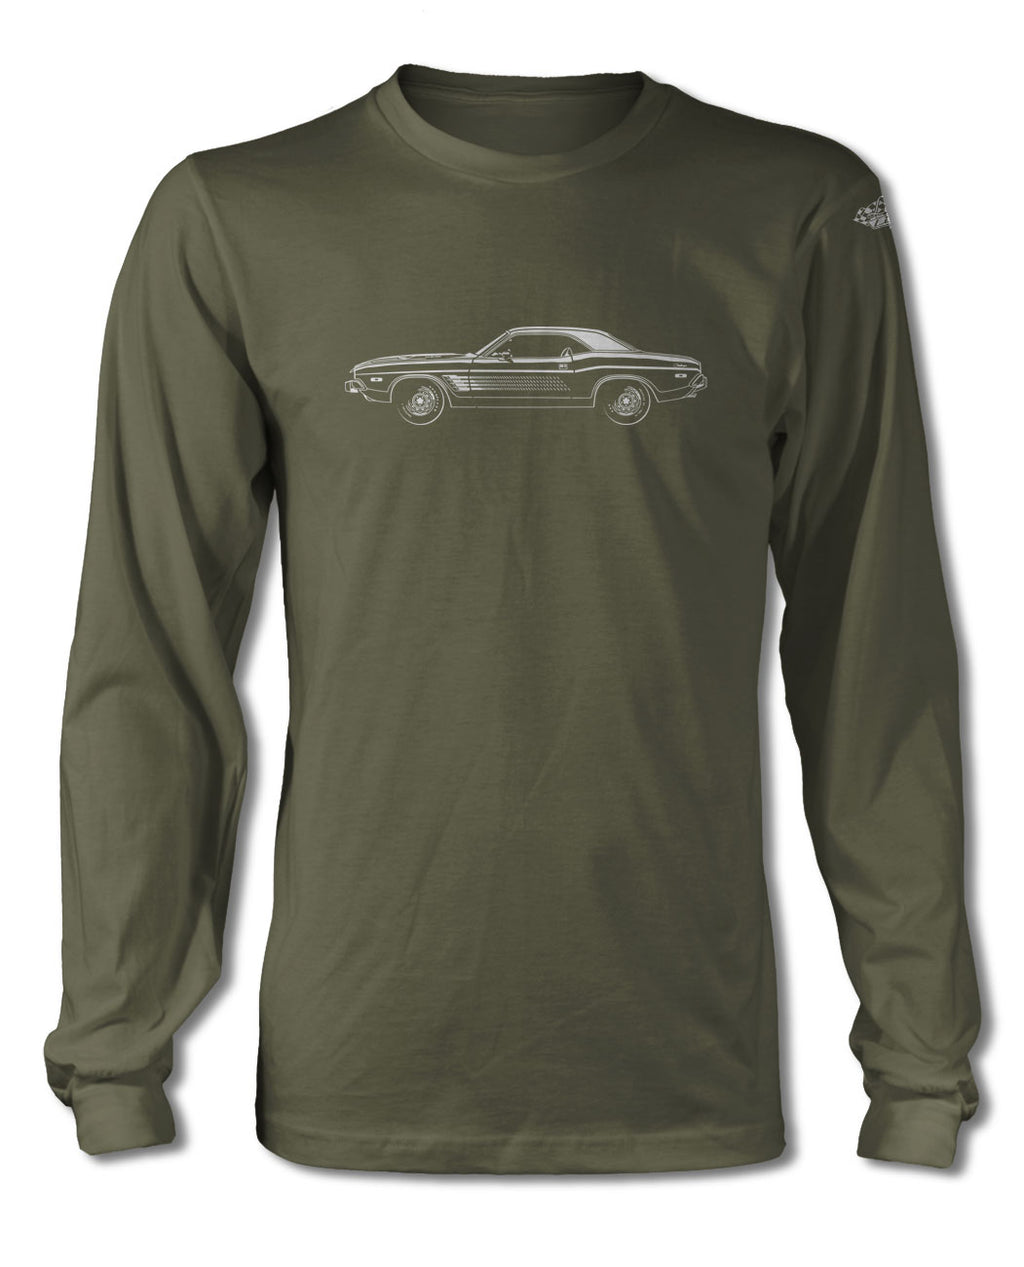 1974 Dodge Challenger Rallye with Stripes Hardtop T-Shirt - Long Sleeves - Side View